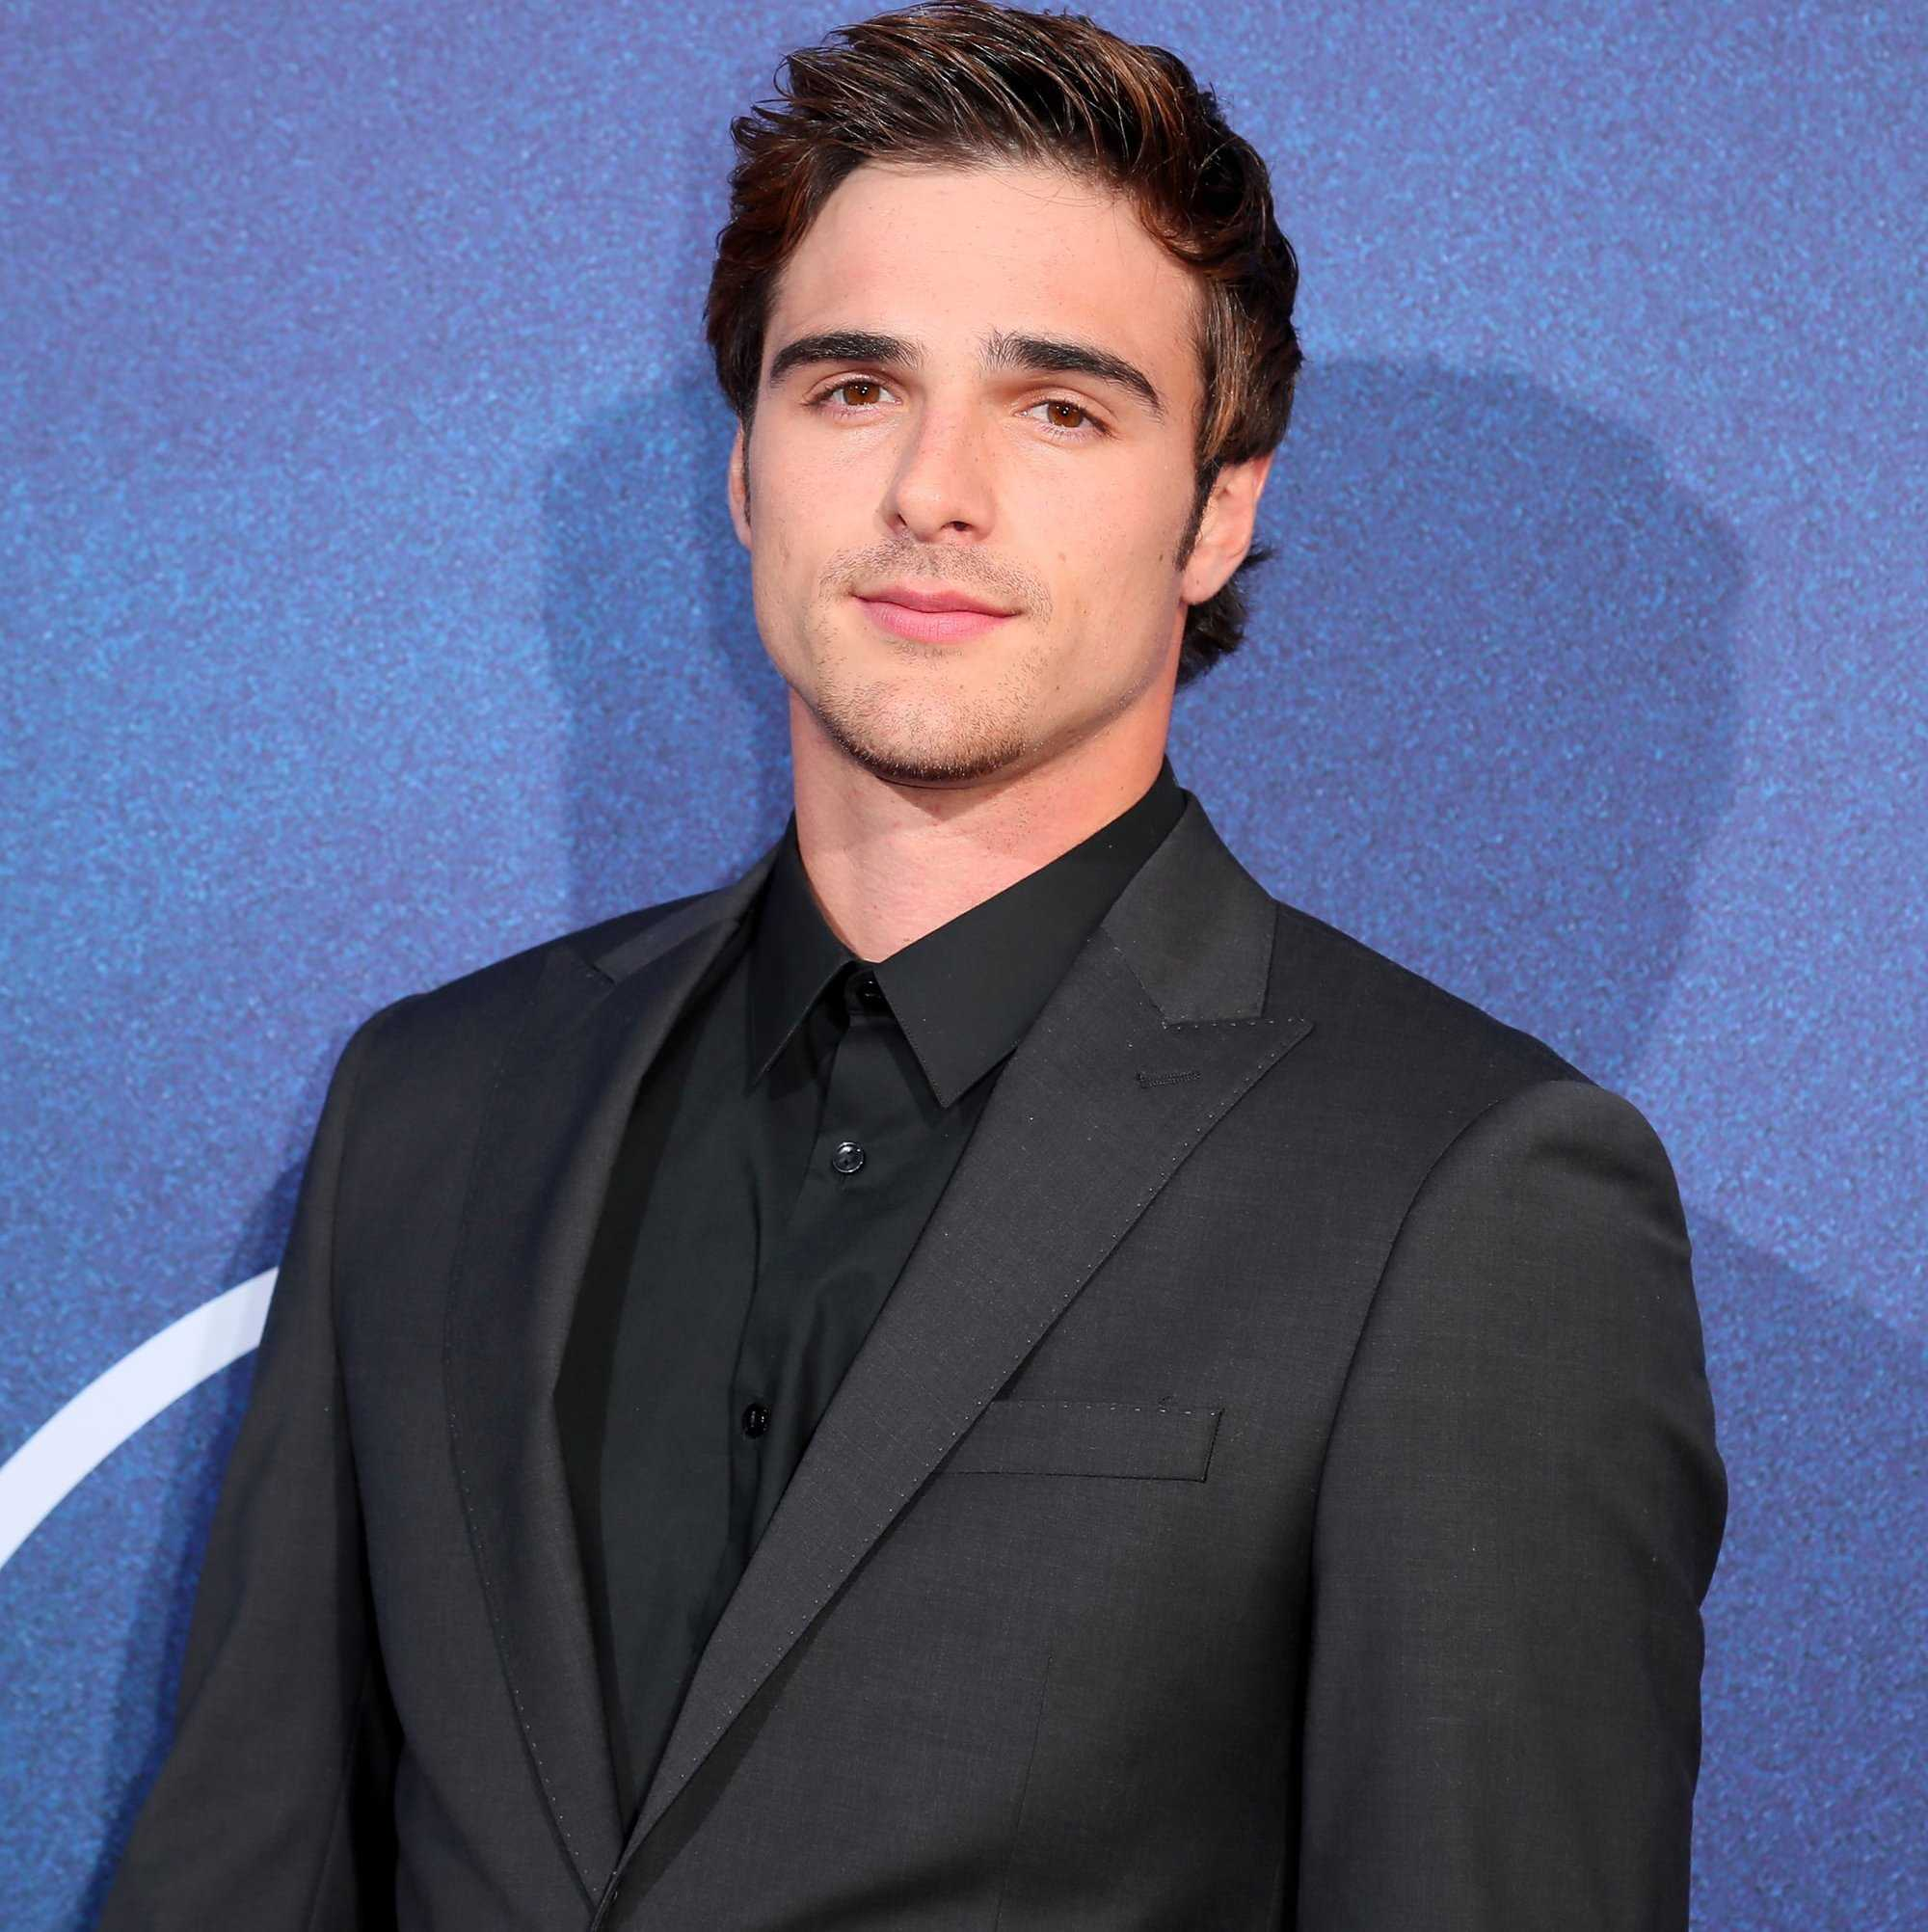 Jacob Elordi Movies